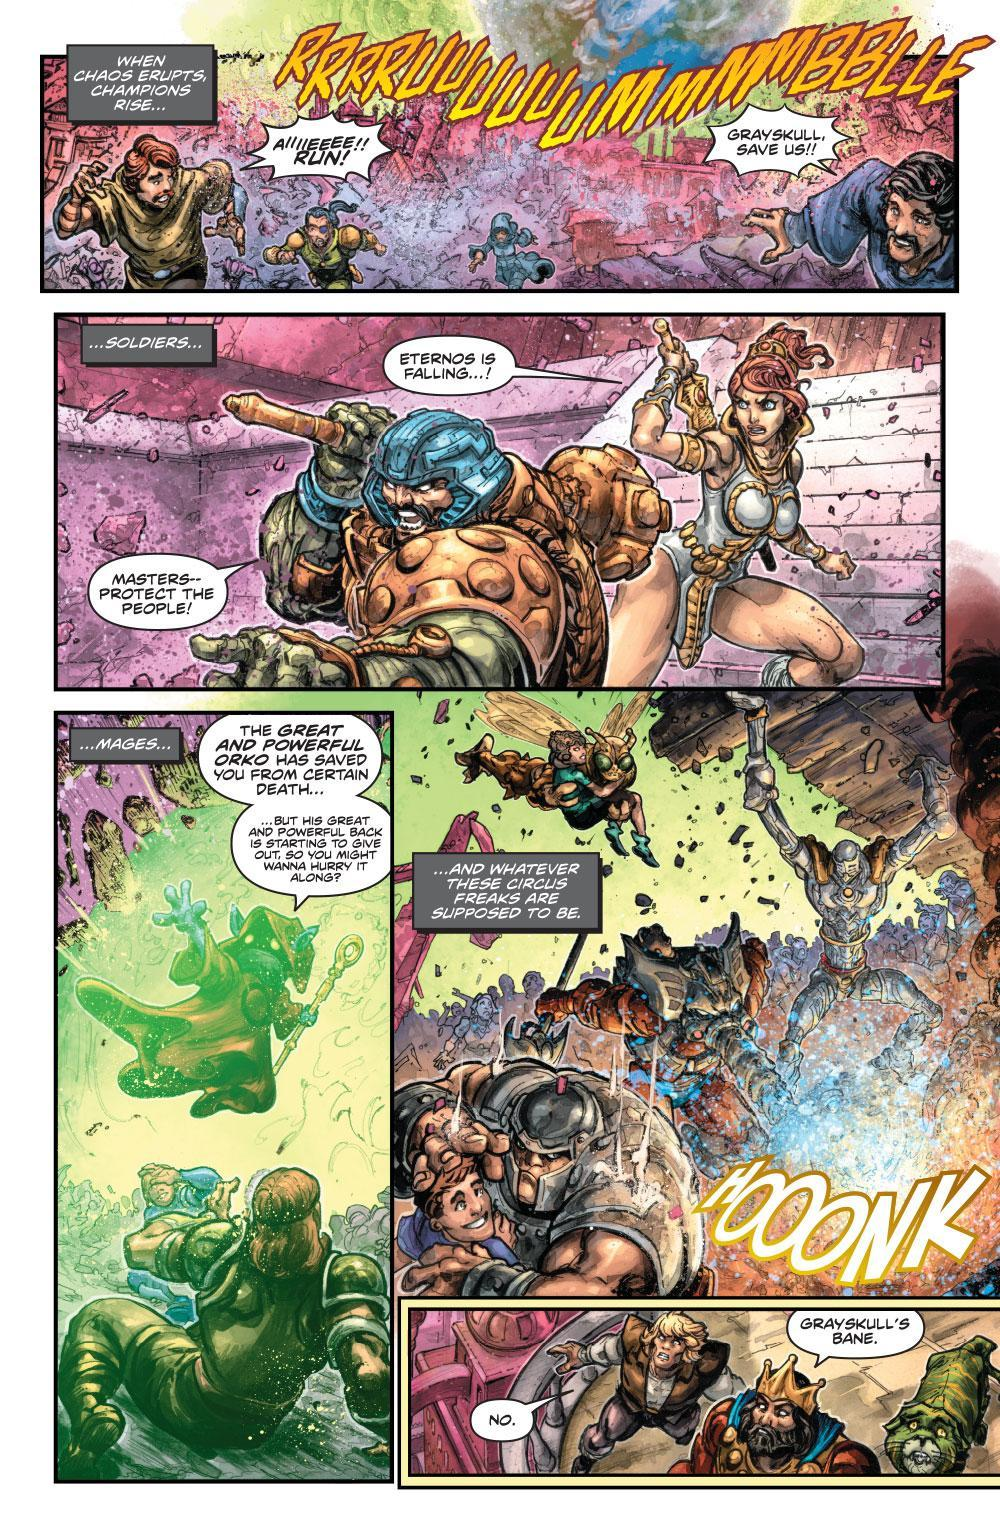 He-Man / Thundercats #1 Preview | Cosmic Book News